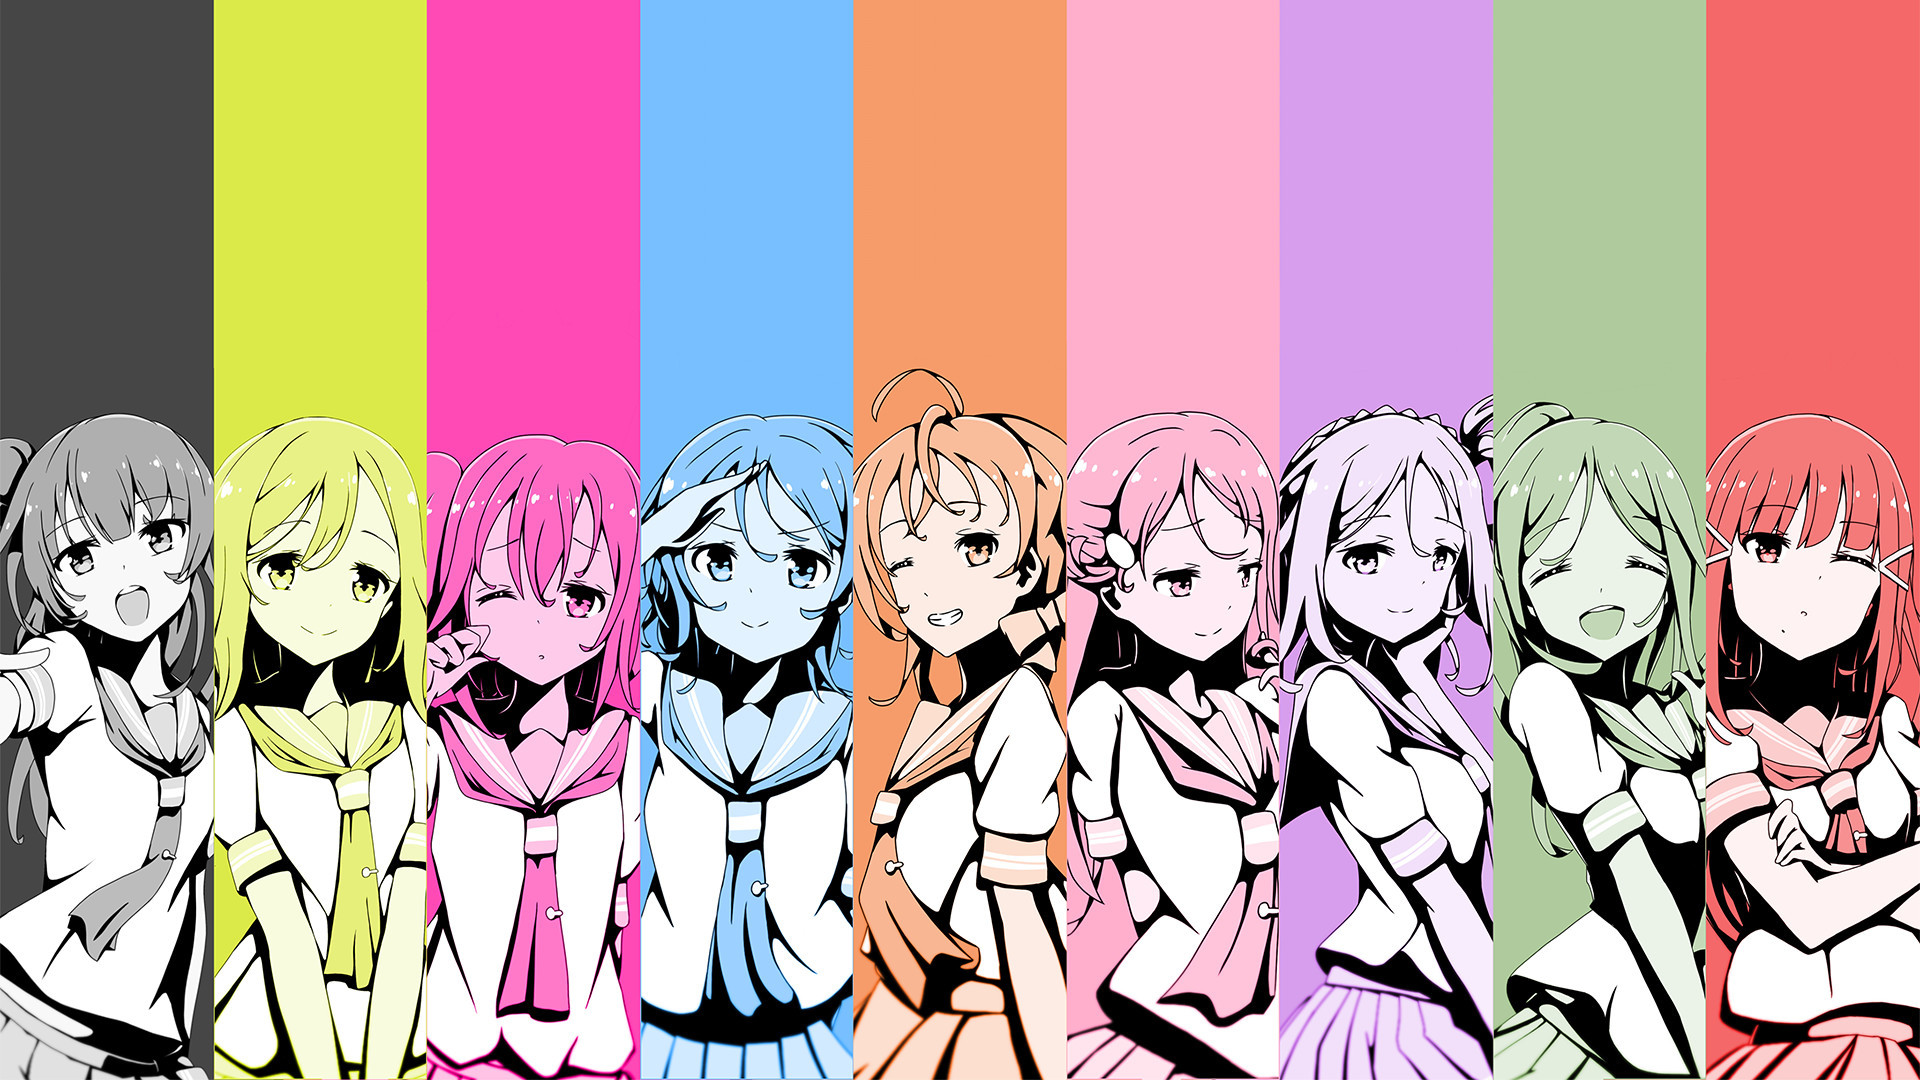 Res: 1920x1080, Love Live! Sunshine!! Wallpapers 13 - 1920 X 1080